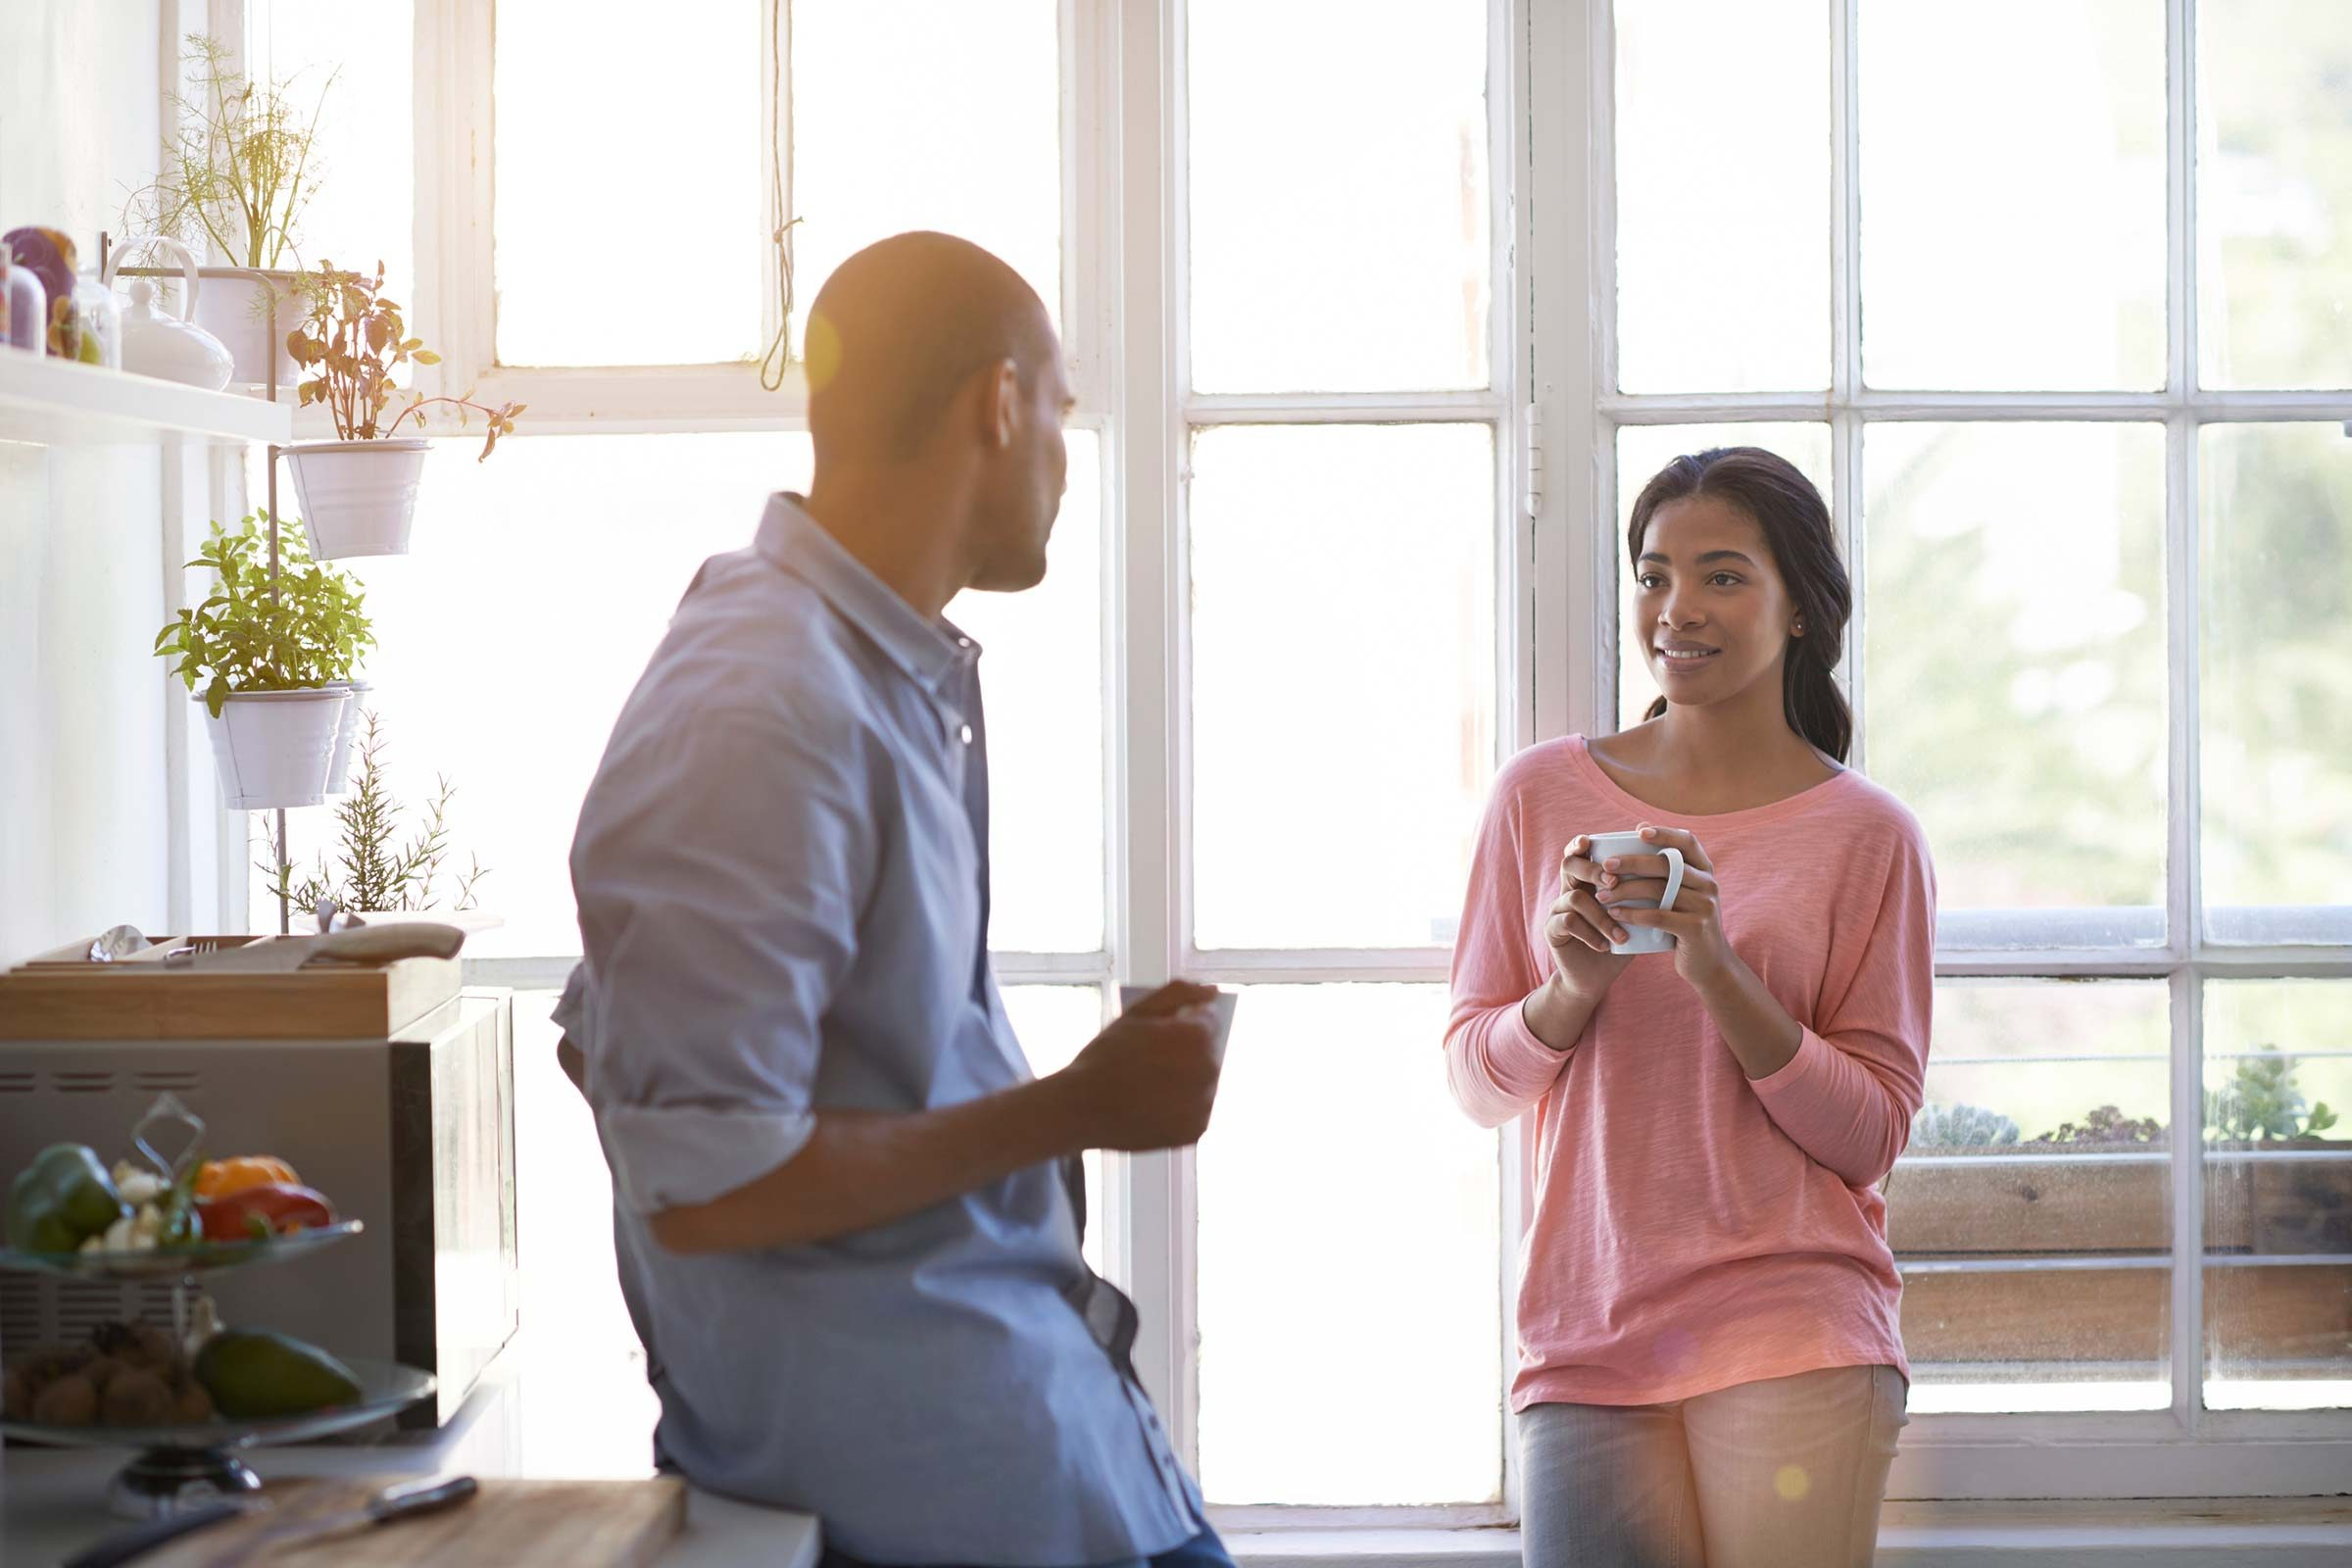 The Happy Relationship 8 Tips To Avoid Marriage Counseling